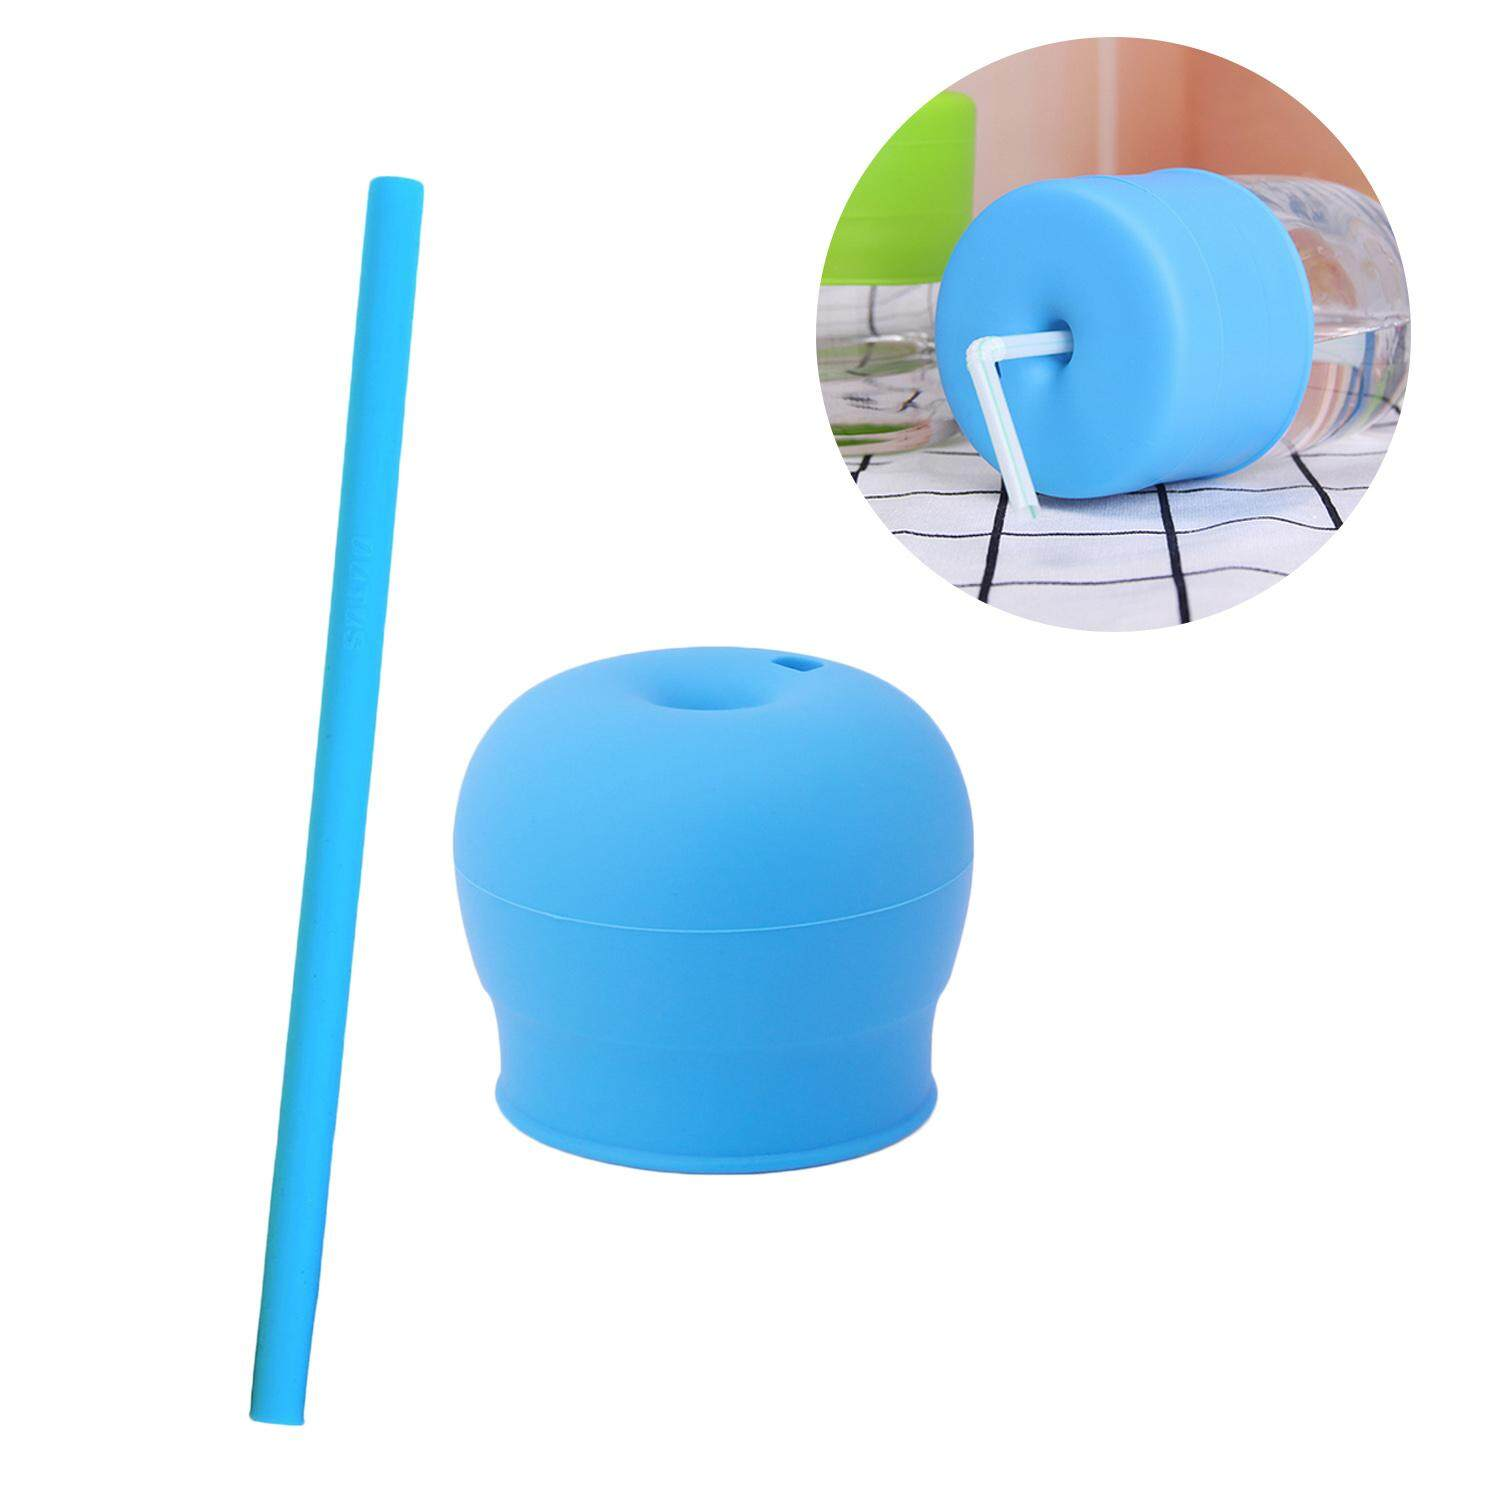 Reusable Universal Silicone Cup Lids Soft Spout Stretch Tops Cup Lids with Straw for Children Baby Kids Random Color